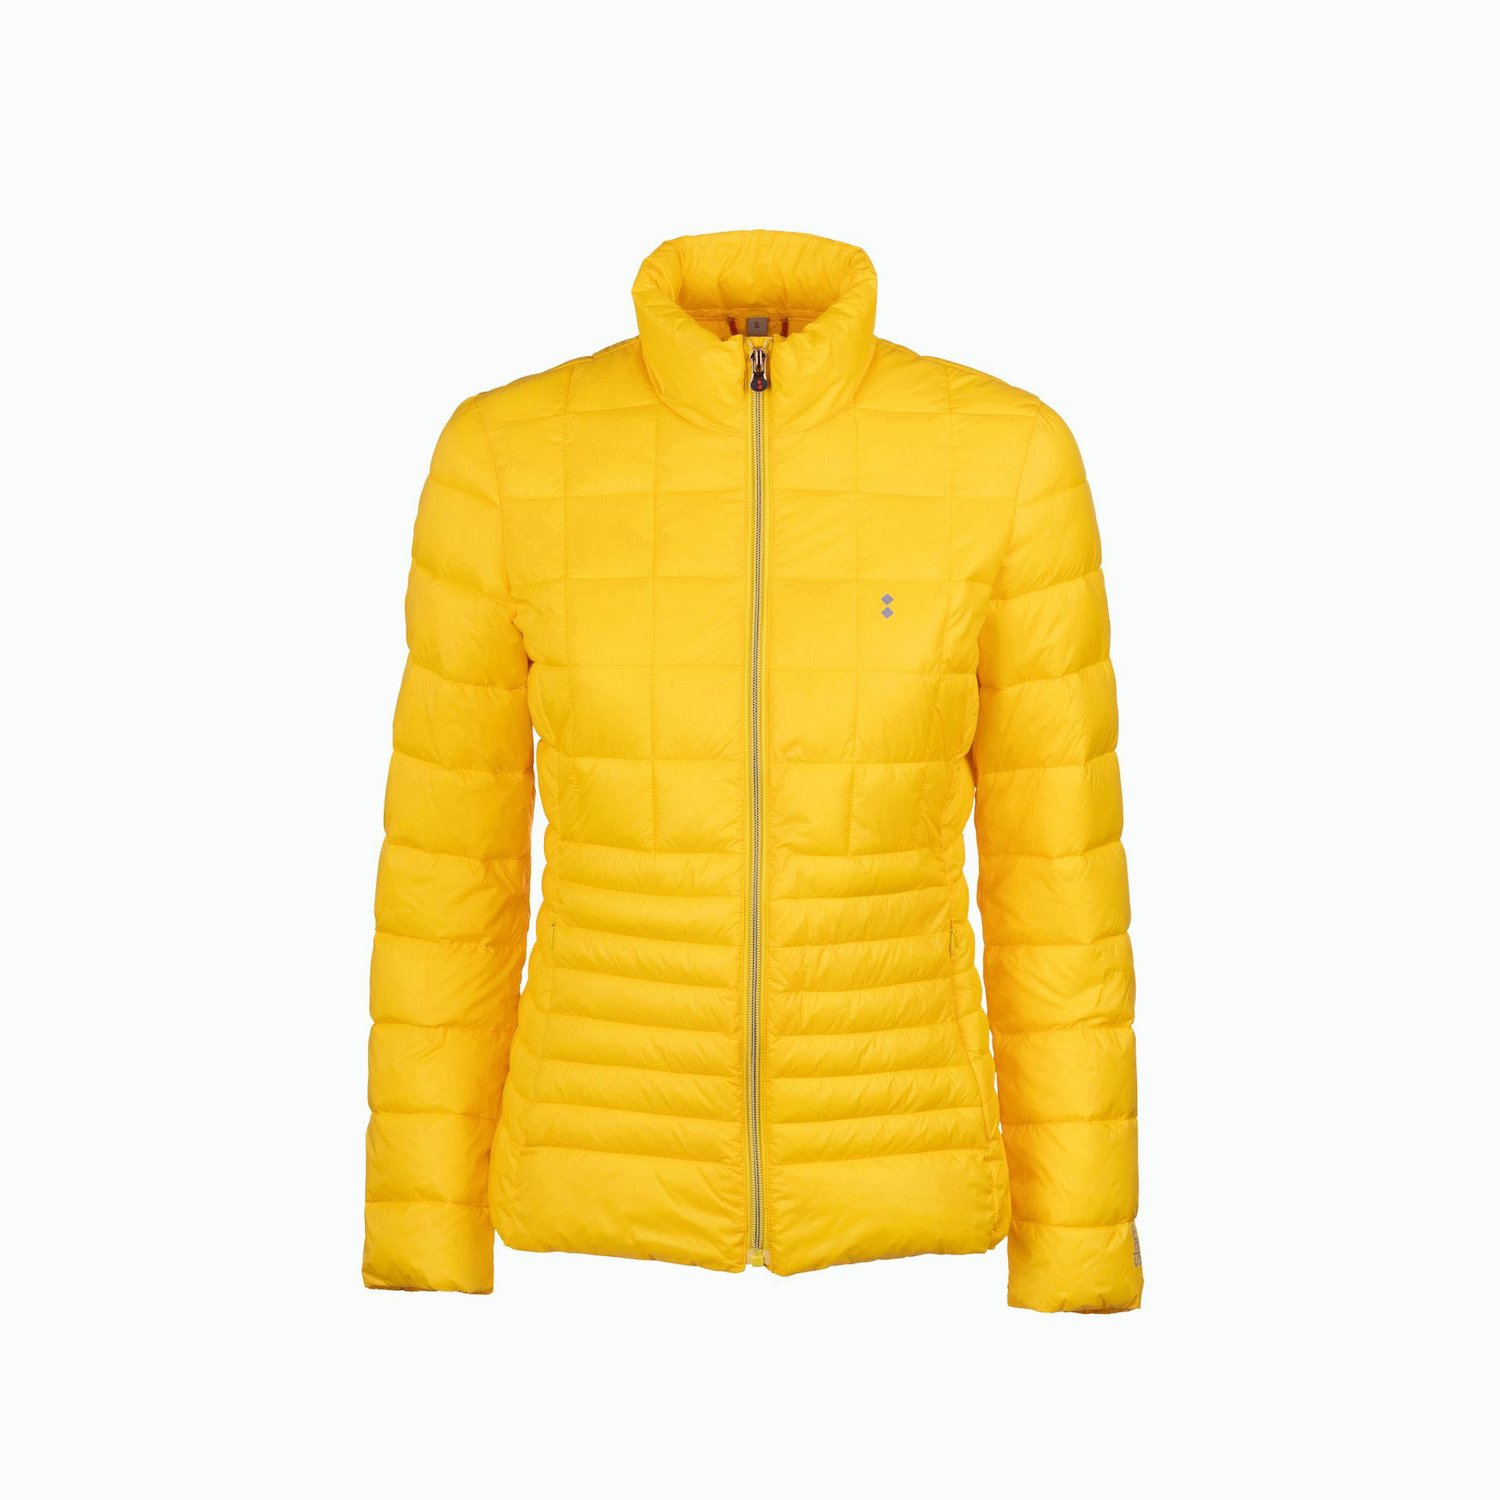 Rhumb Jacket - Blazing Yellow